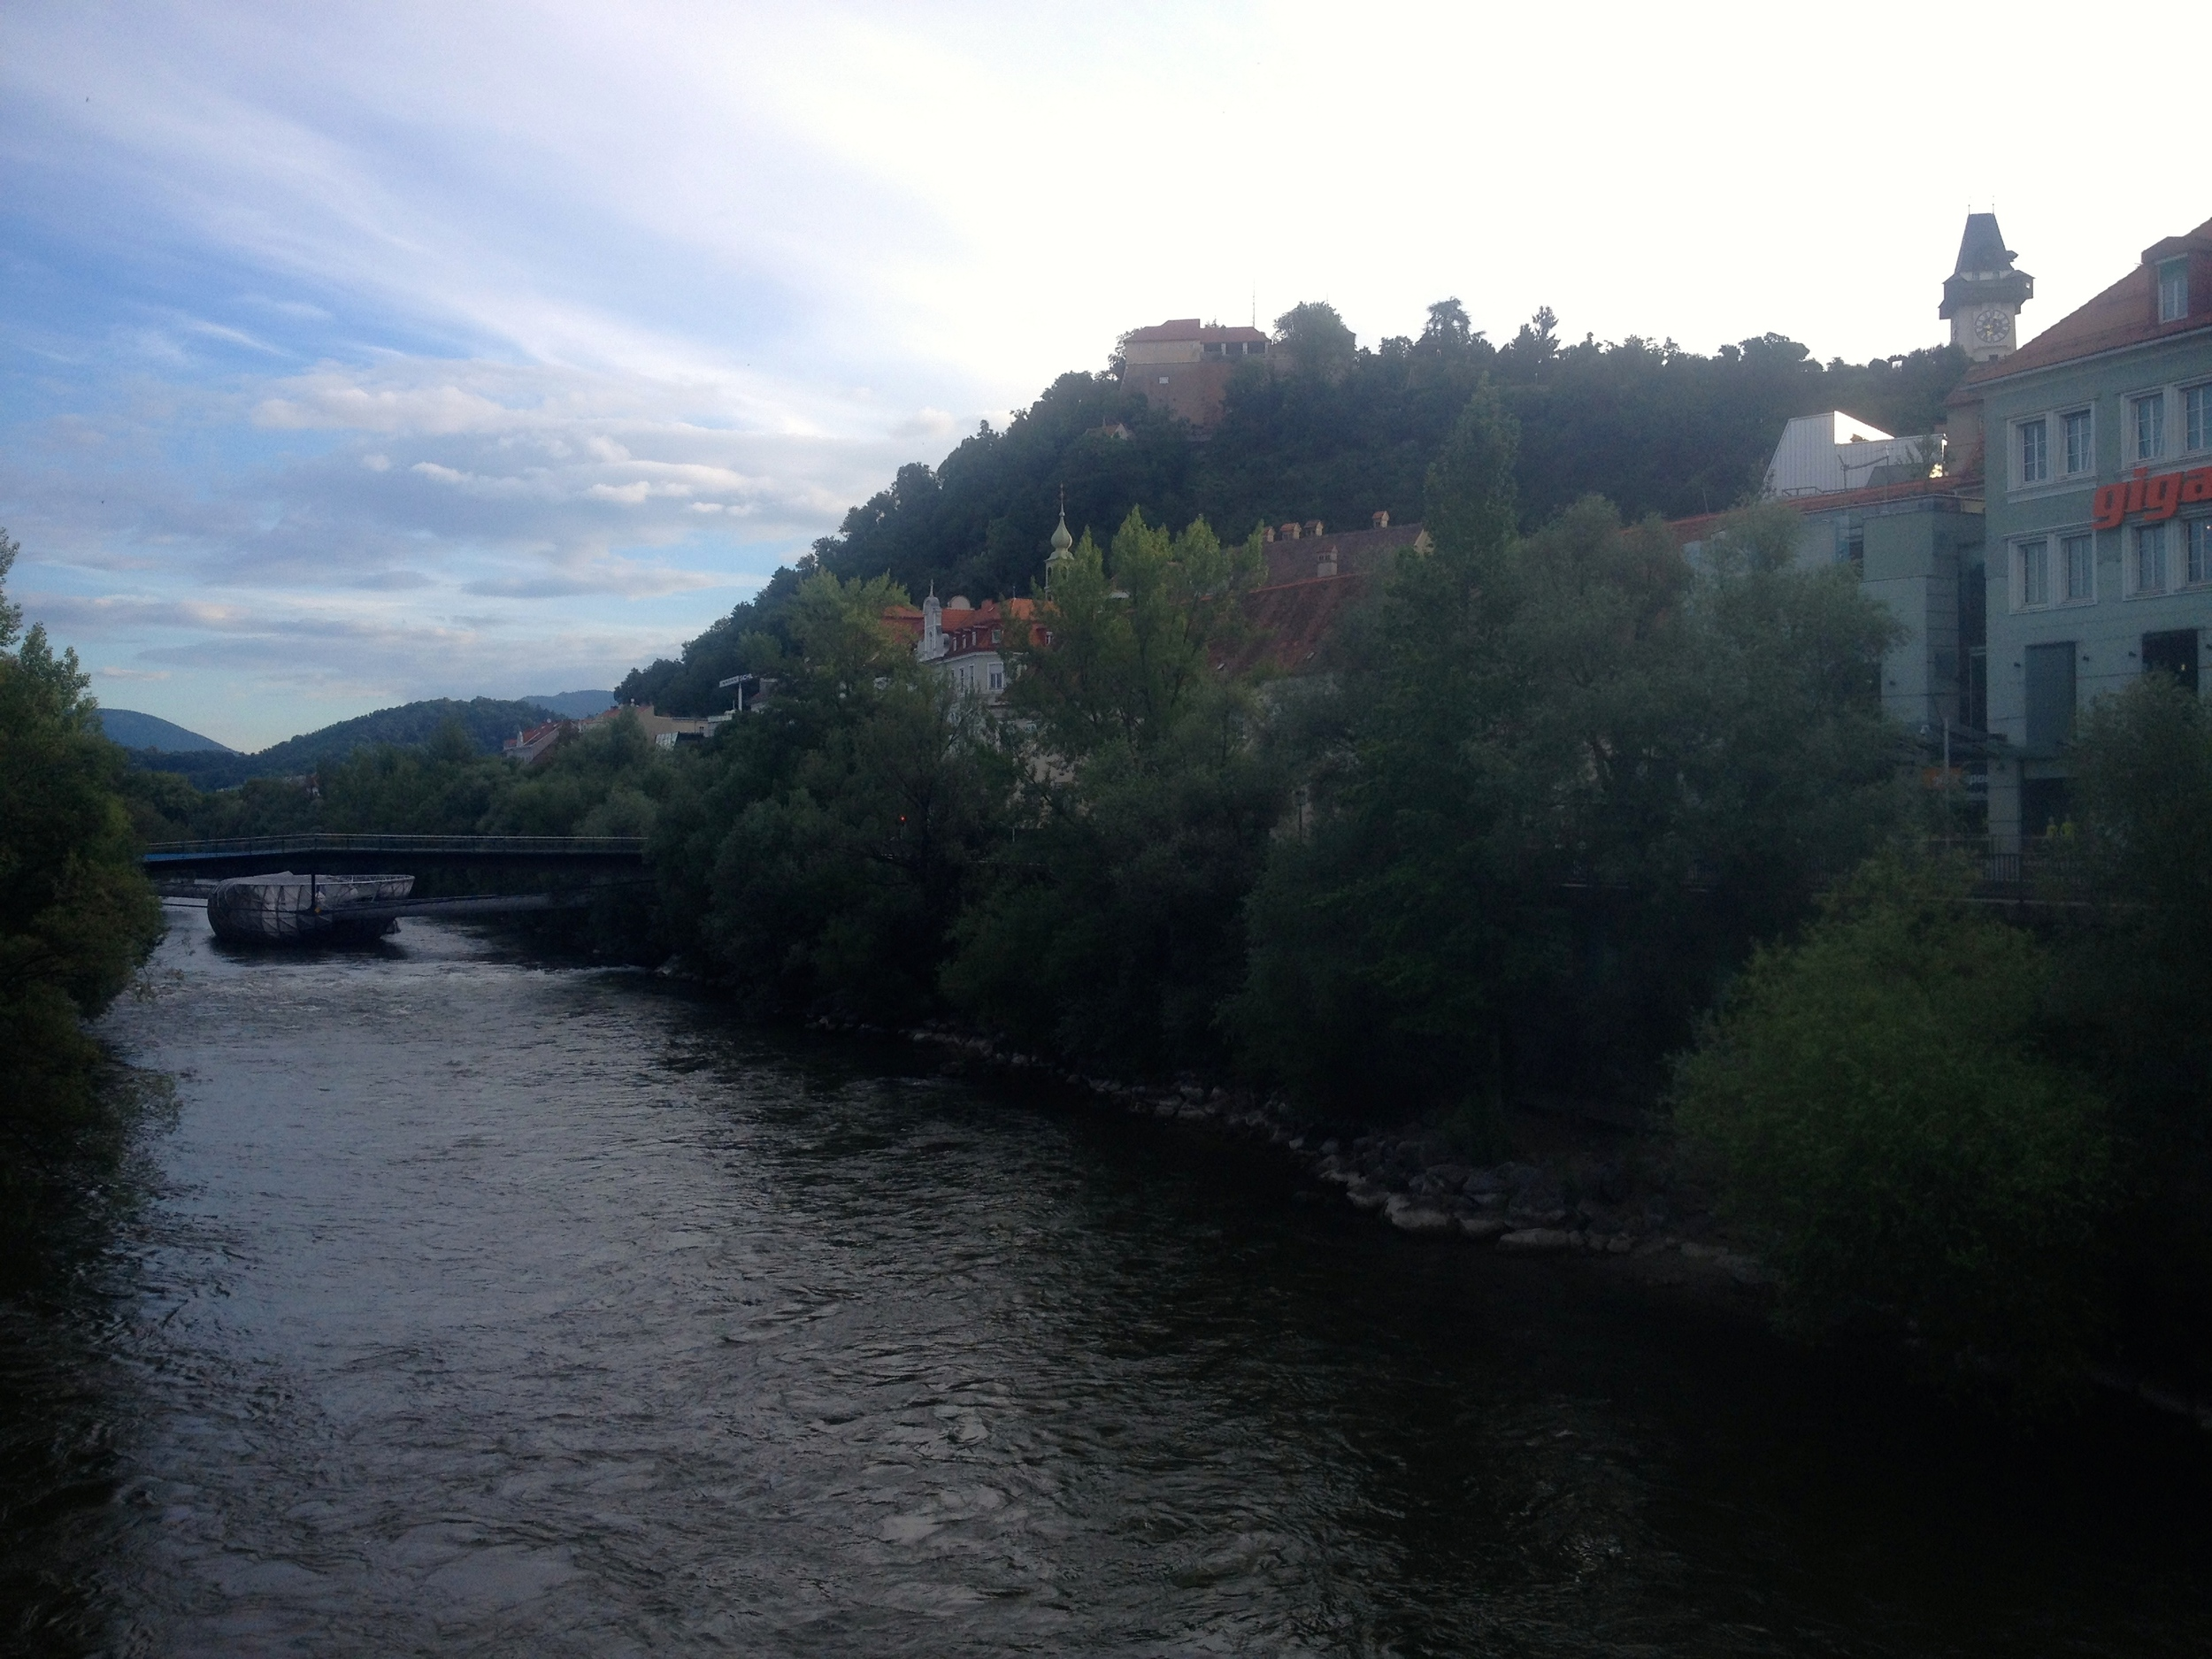 From one of the bridges: a view of the Schloßberg.